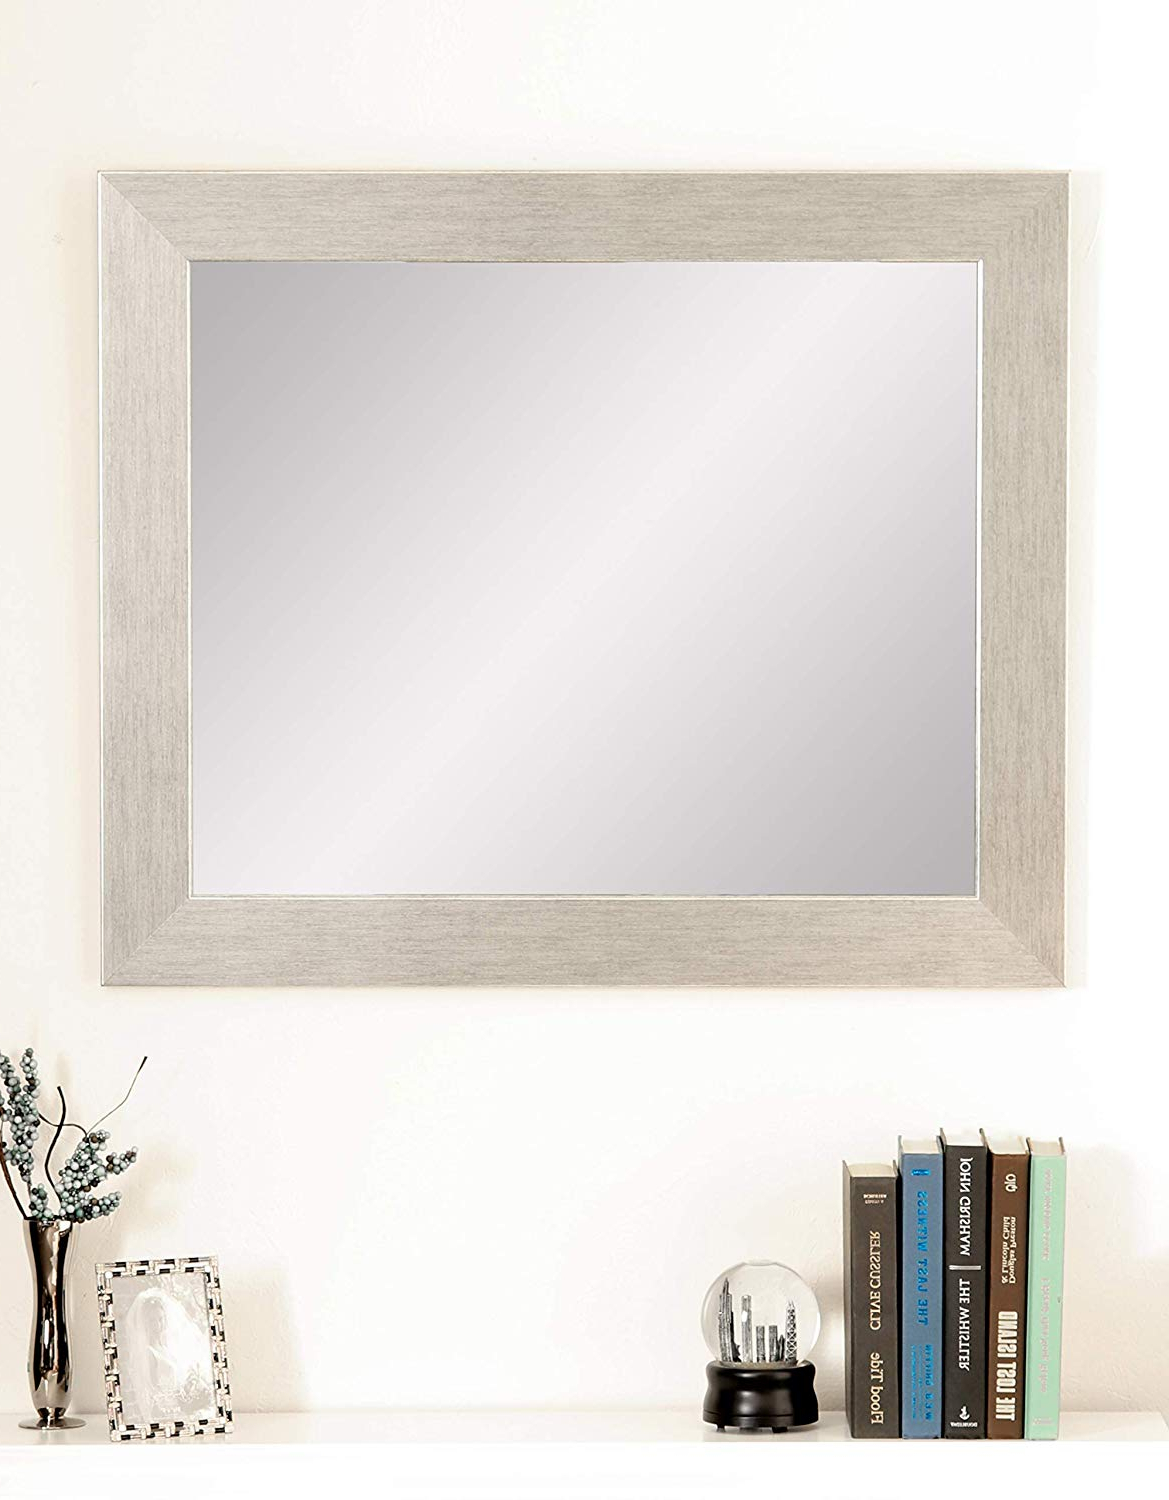 "Favorite Brandtworks Stainless Grain Wall Mirror, 32"" X 38"", Flat Brushed Silver Pertaining To Flat Wall Mirrors (View 3 of 20)"